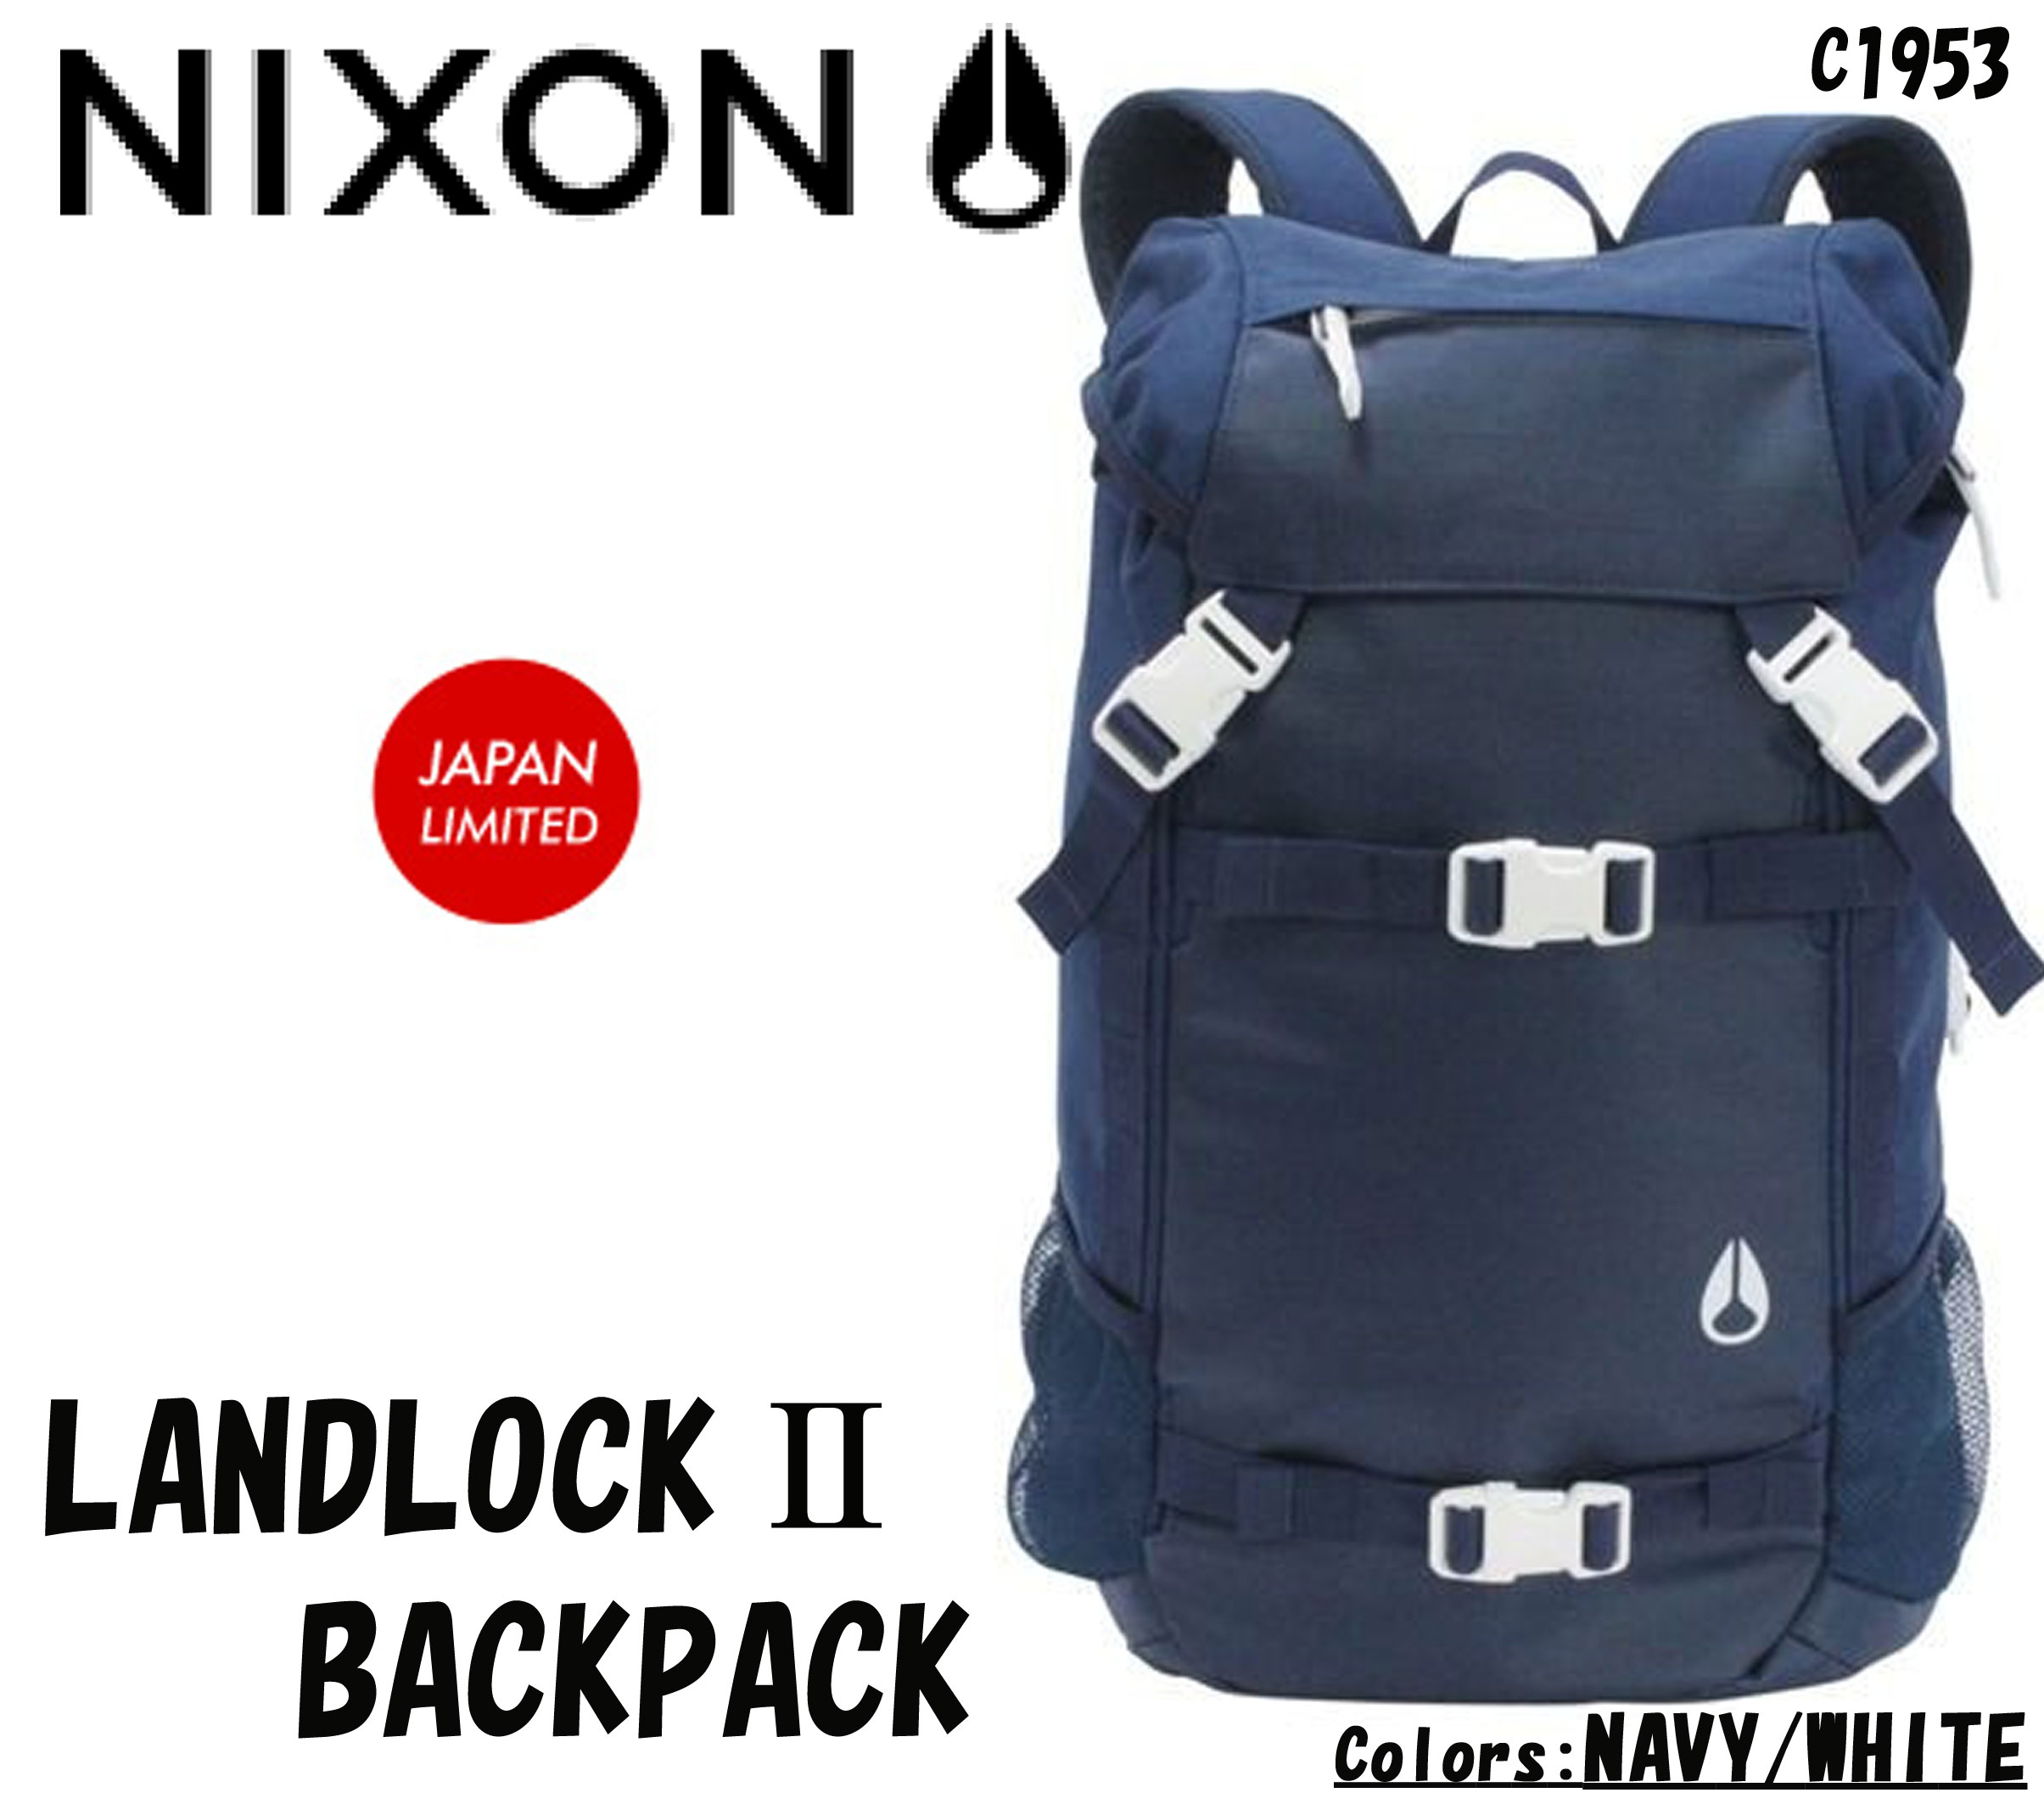 nixon_backpack_landlock_japan_mein1